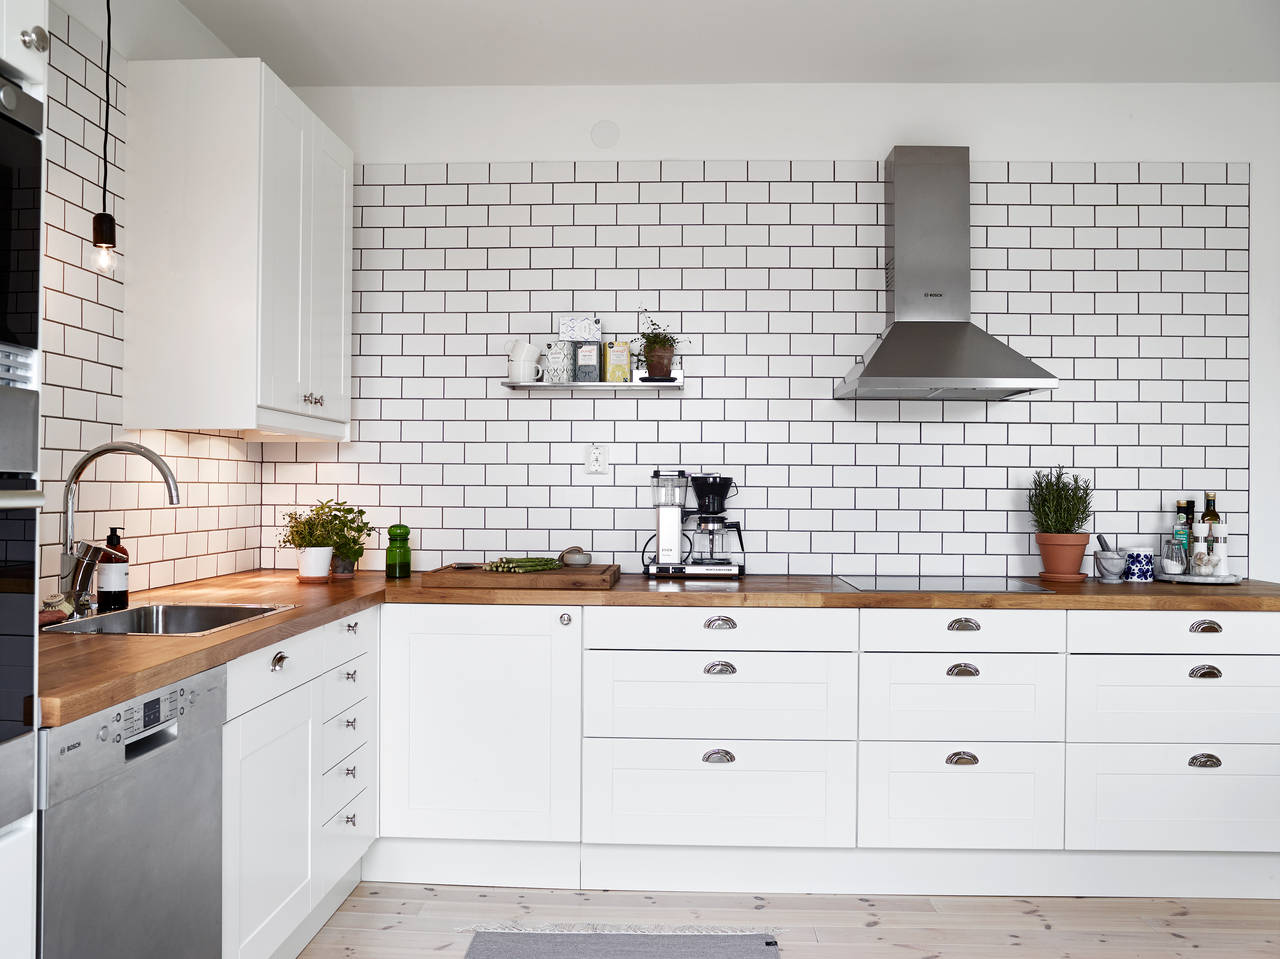 a white tiles black grout kind of kitchen